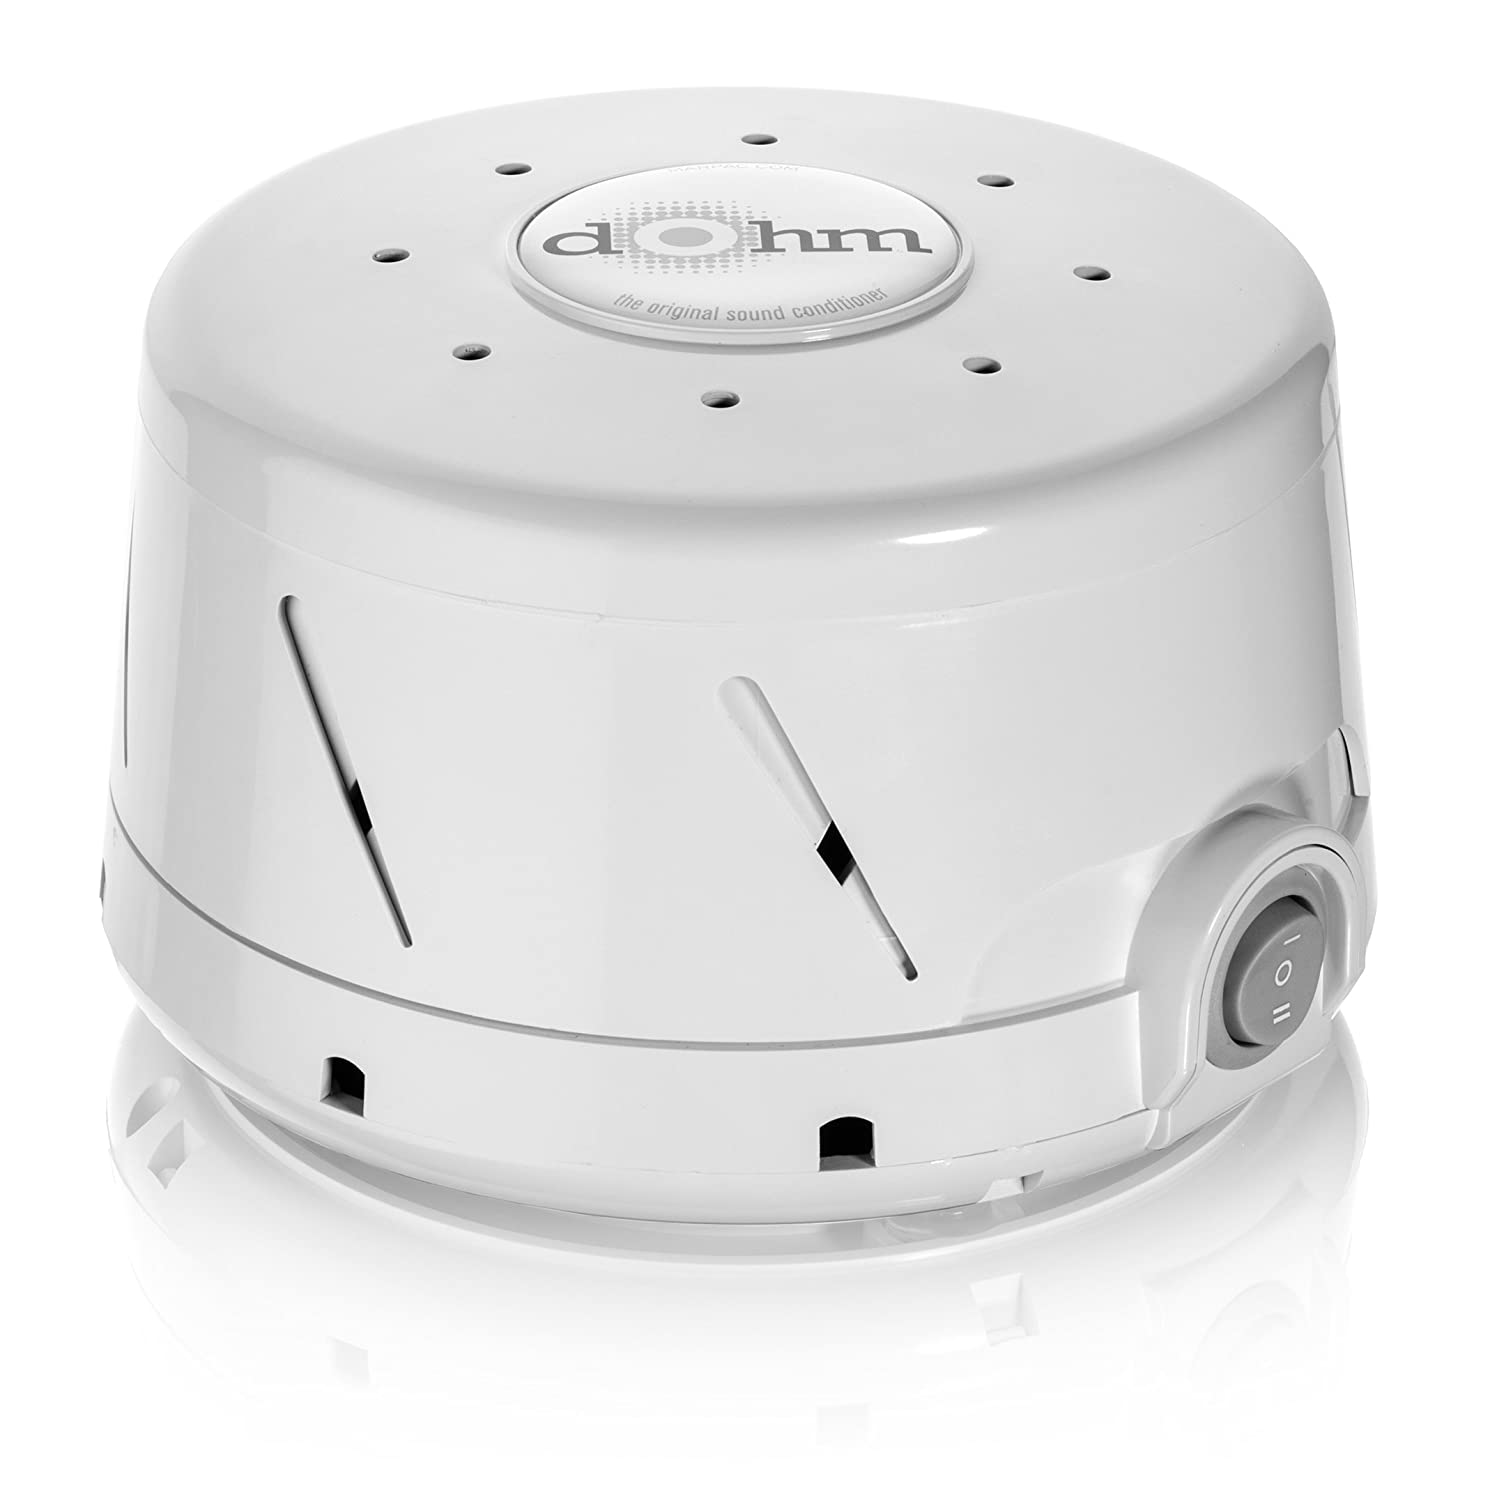 fan noise sleep machine